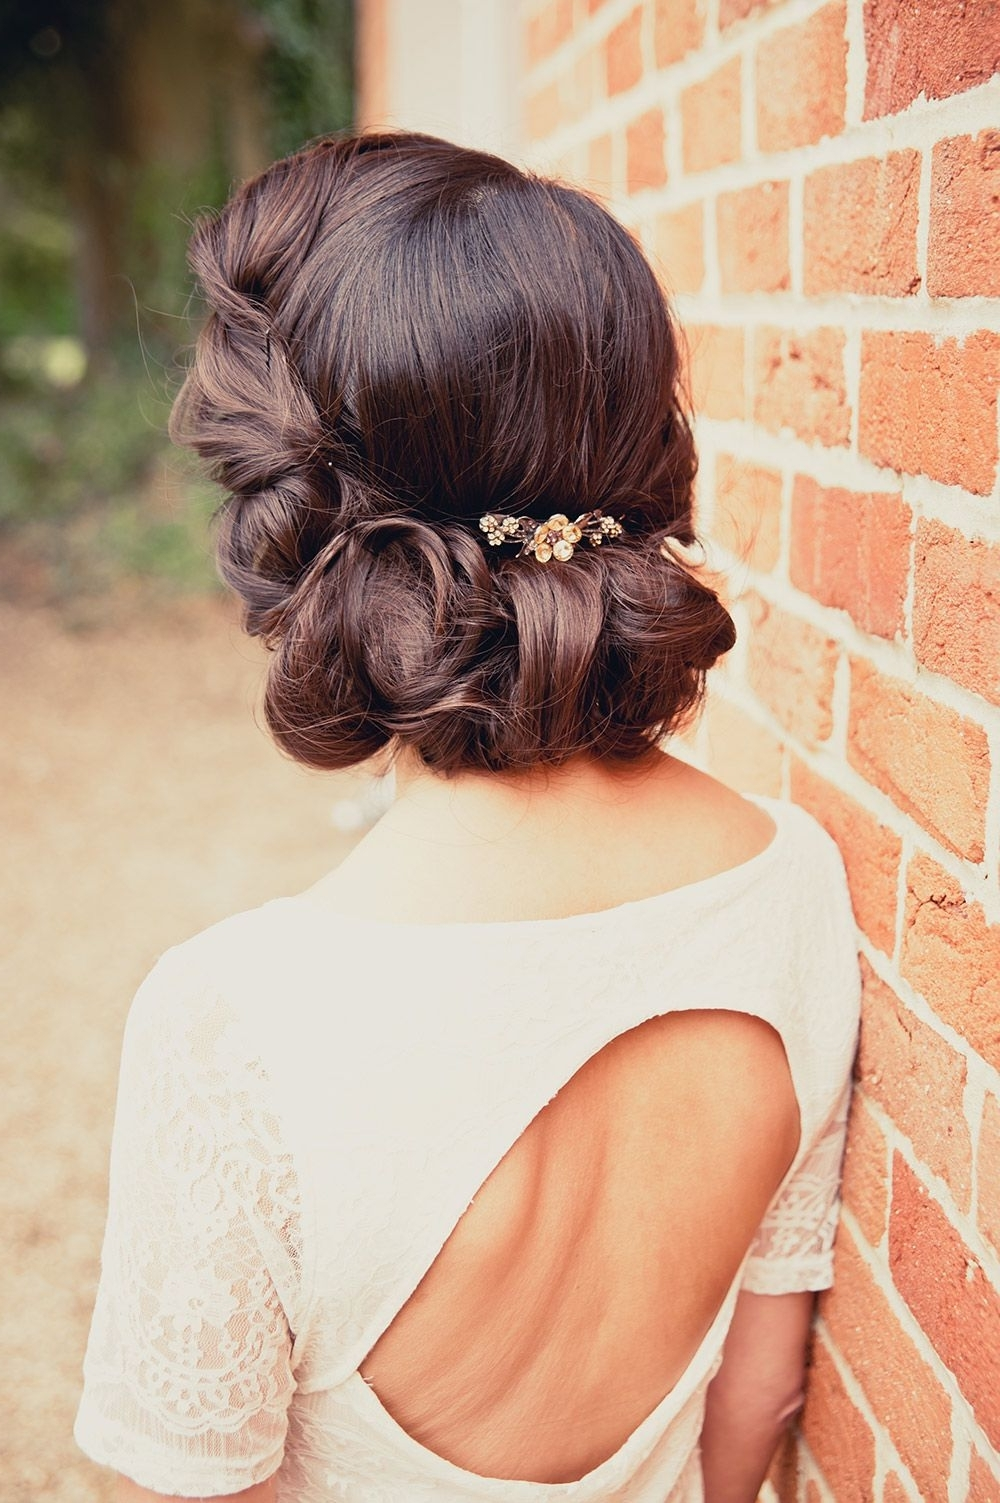 Beautiful Wedding Updos: 17 Inspirational Styles For Your Big Day Pertaining To Well Known Retro Wedding Hairstyles For Long Hair (View 9 of 15)